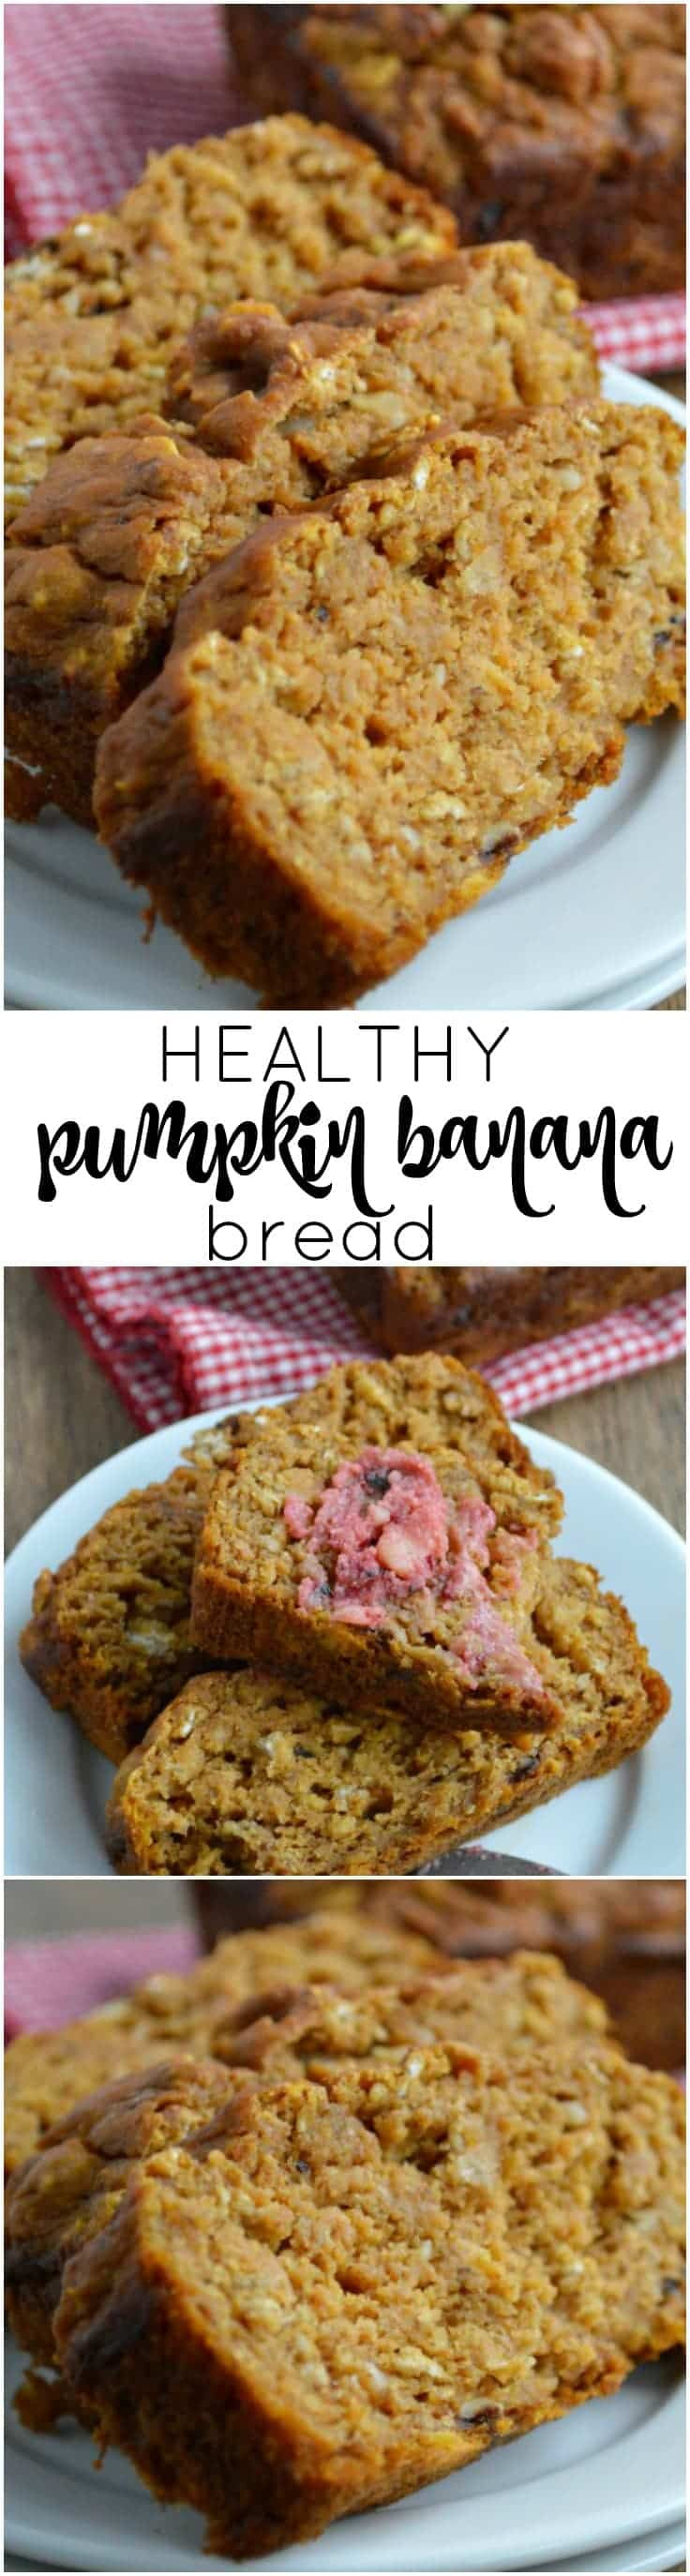 Healthy Banana Pumpkin Bread With Applesauce  Healthy Pumpkin Banana Bread Sugar Dish Me